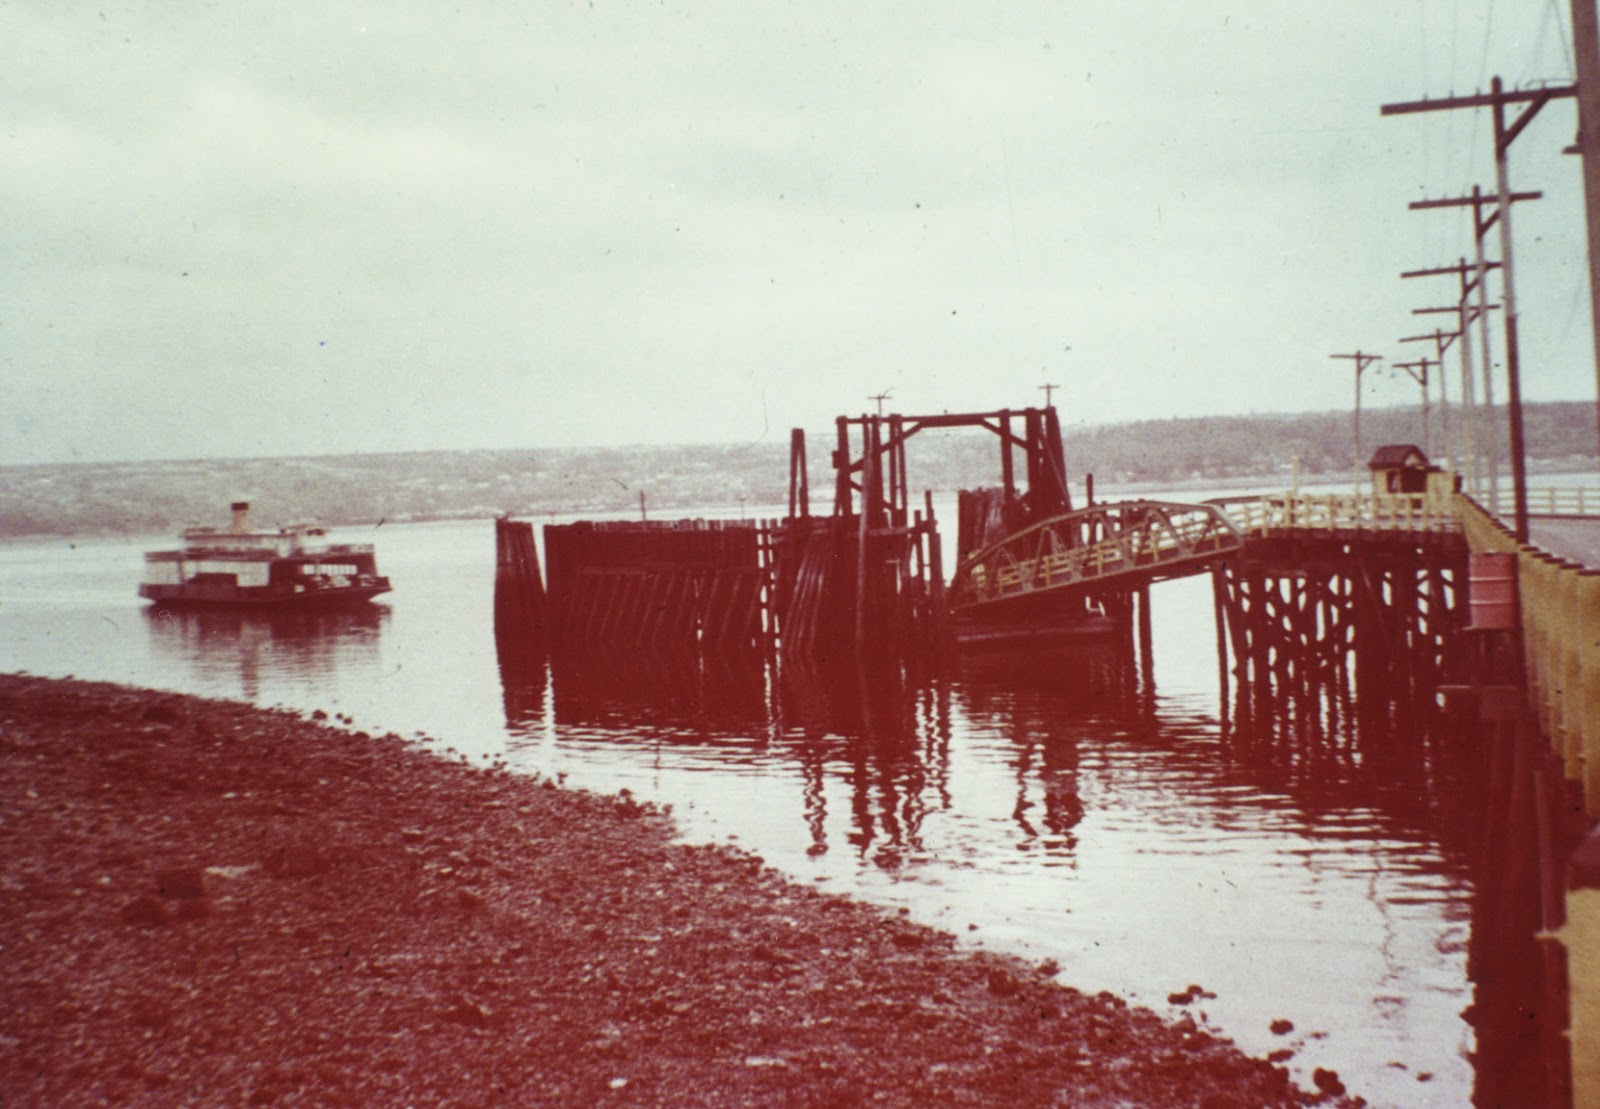 Tacoma Back Pages >> Harbor History Museum Blog: Pt. Fosdick Ferry Landing Opens, June 8, 1928